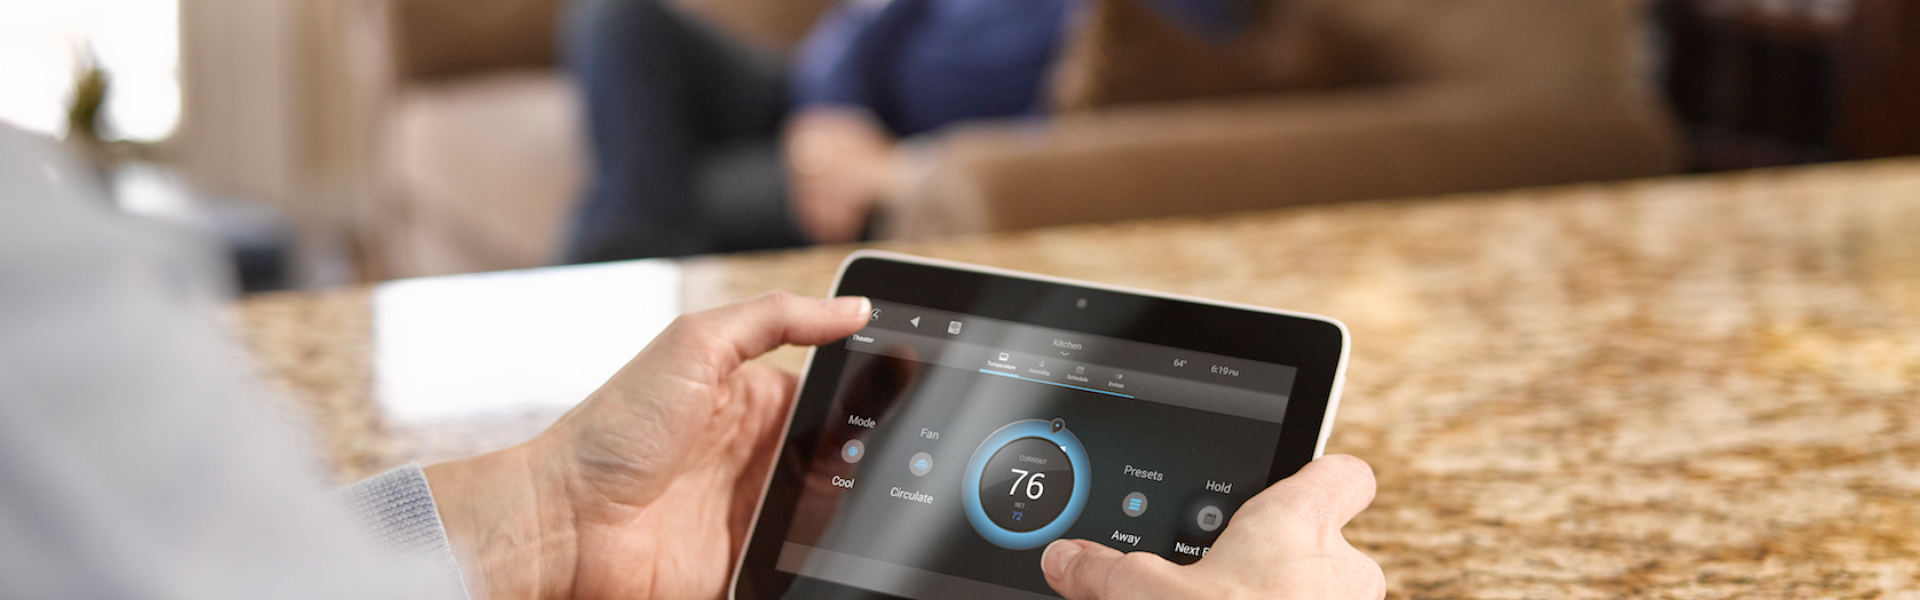 Smart home installation by Integral Systems for Tampa